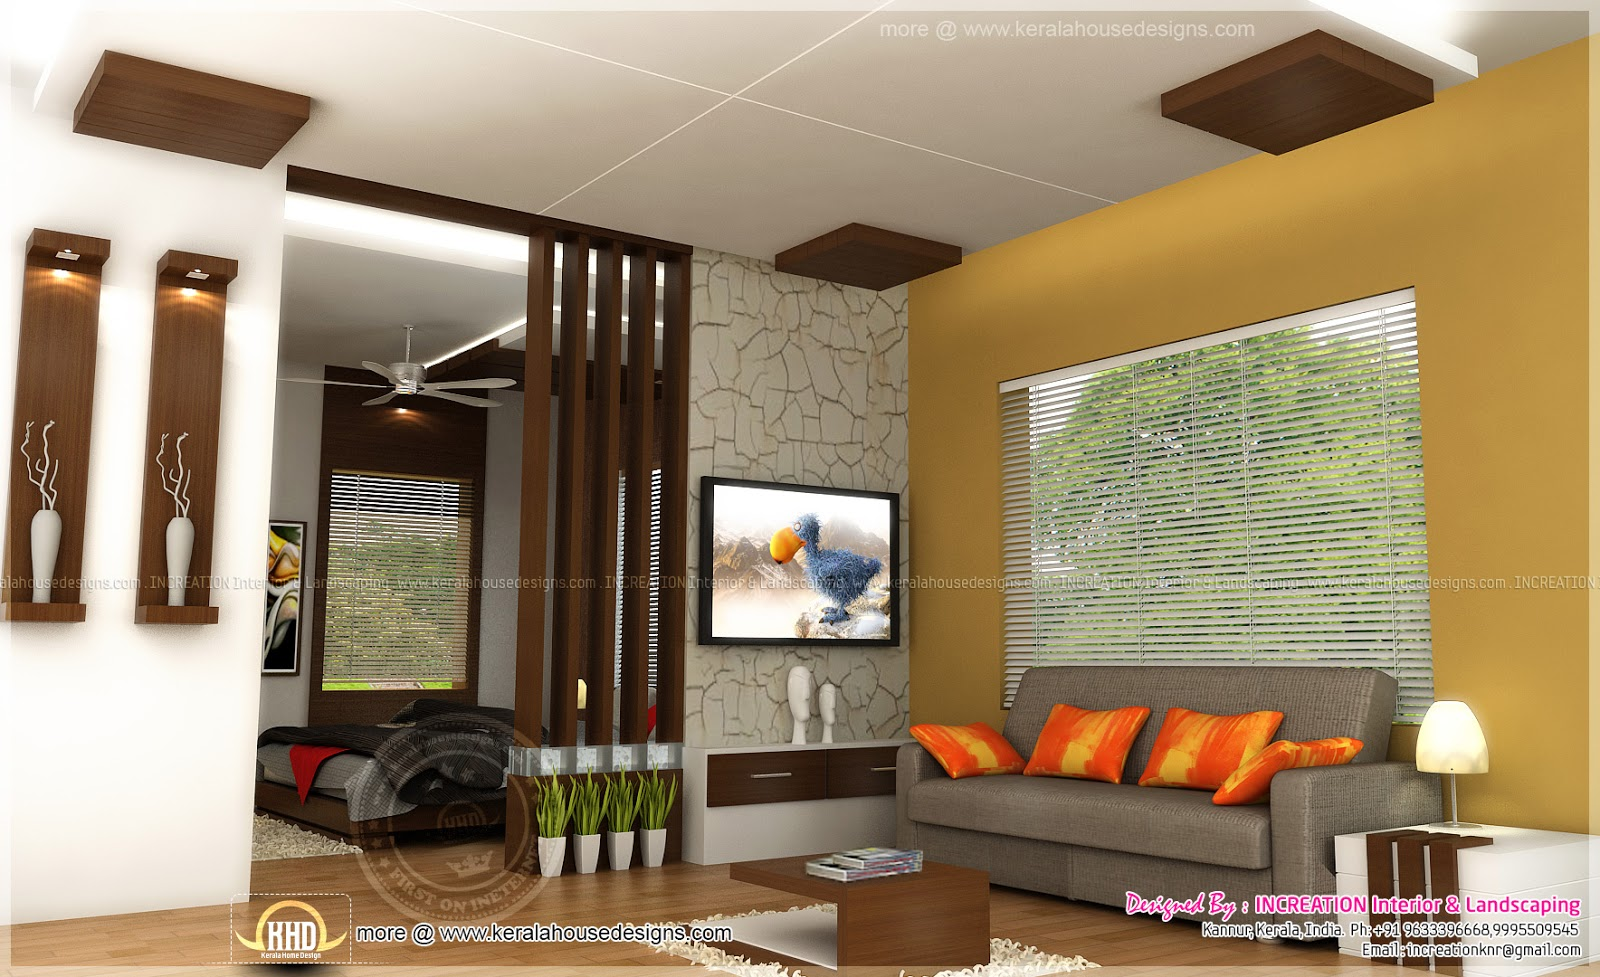 Interior designs from kannur kerala home kerala plans for House interior ideas